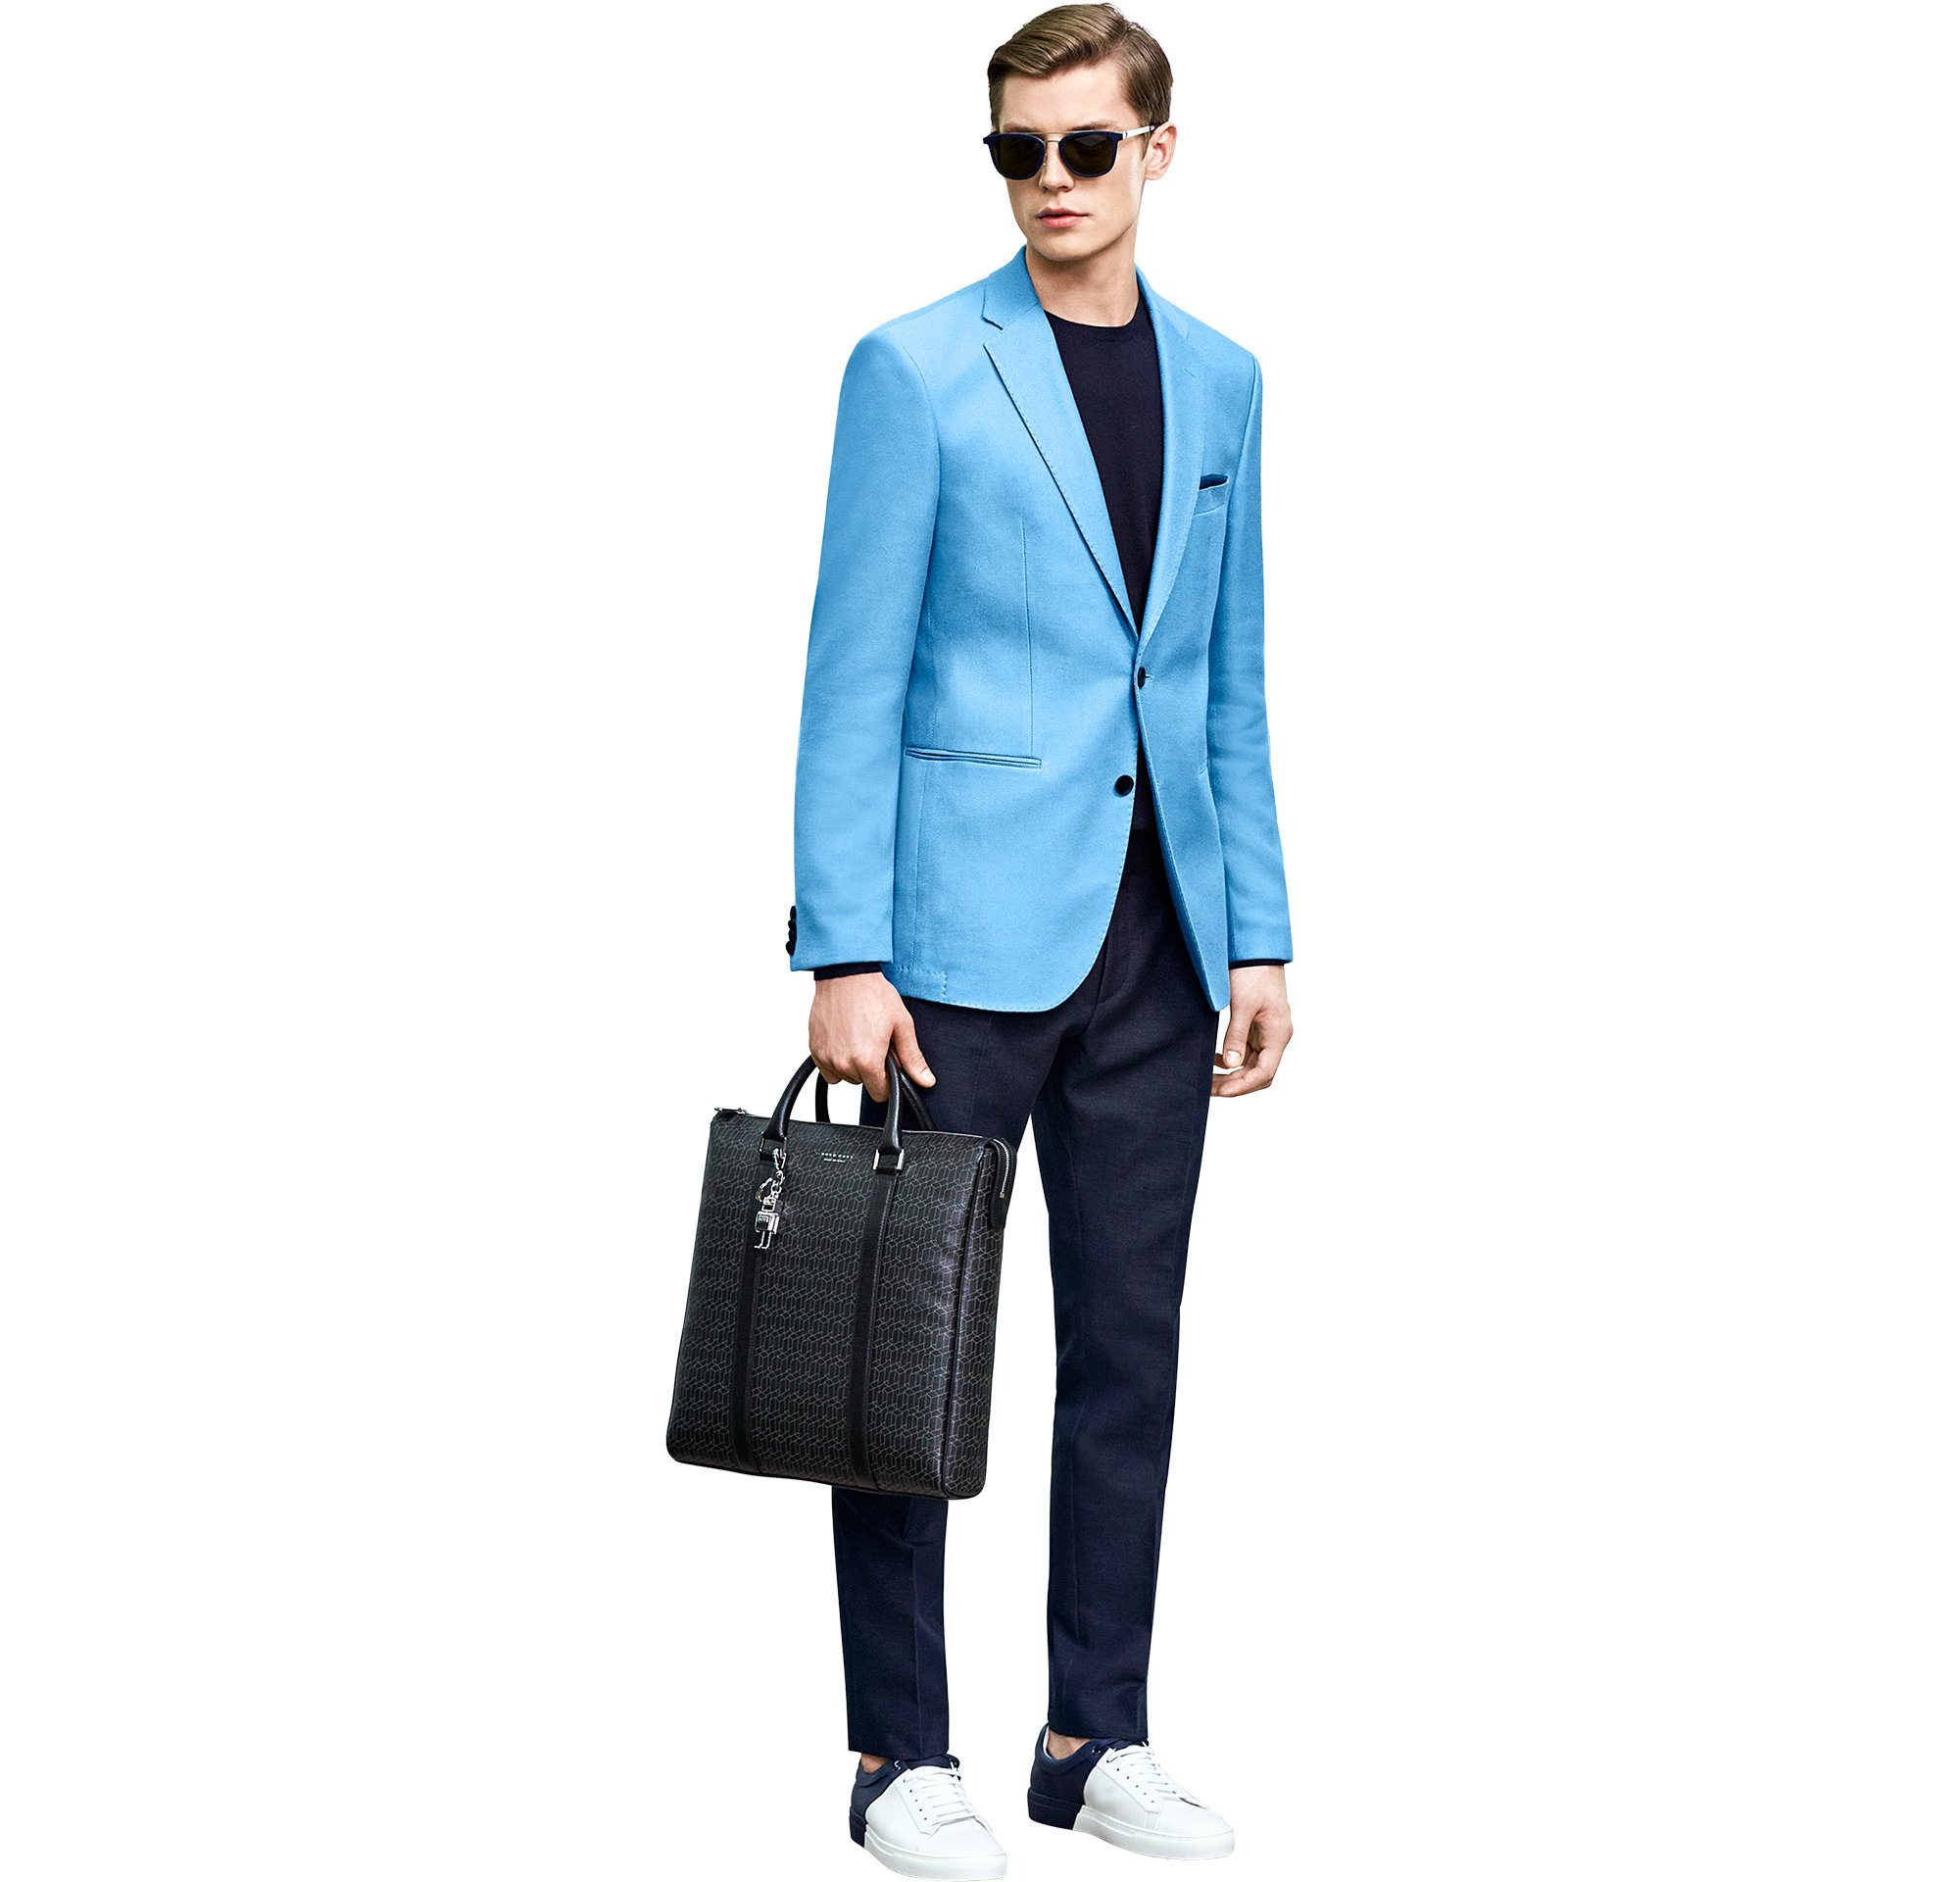 Blue jacket over knitwear and trousers with black bag and shoes by BOSS